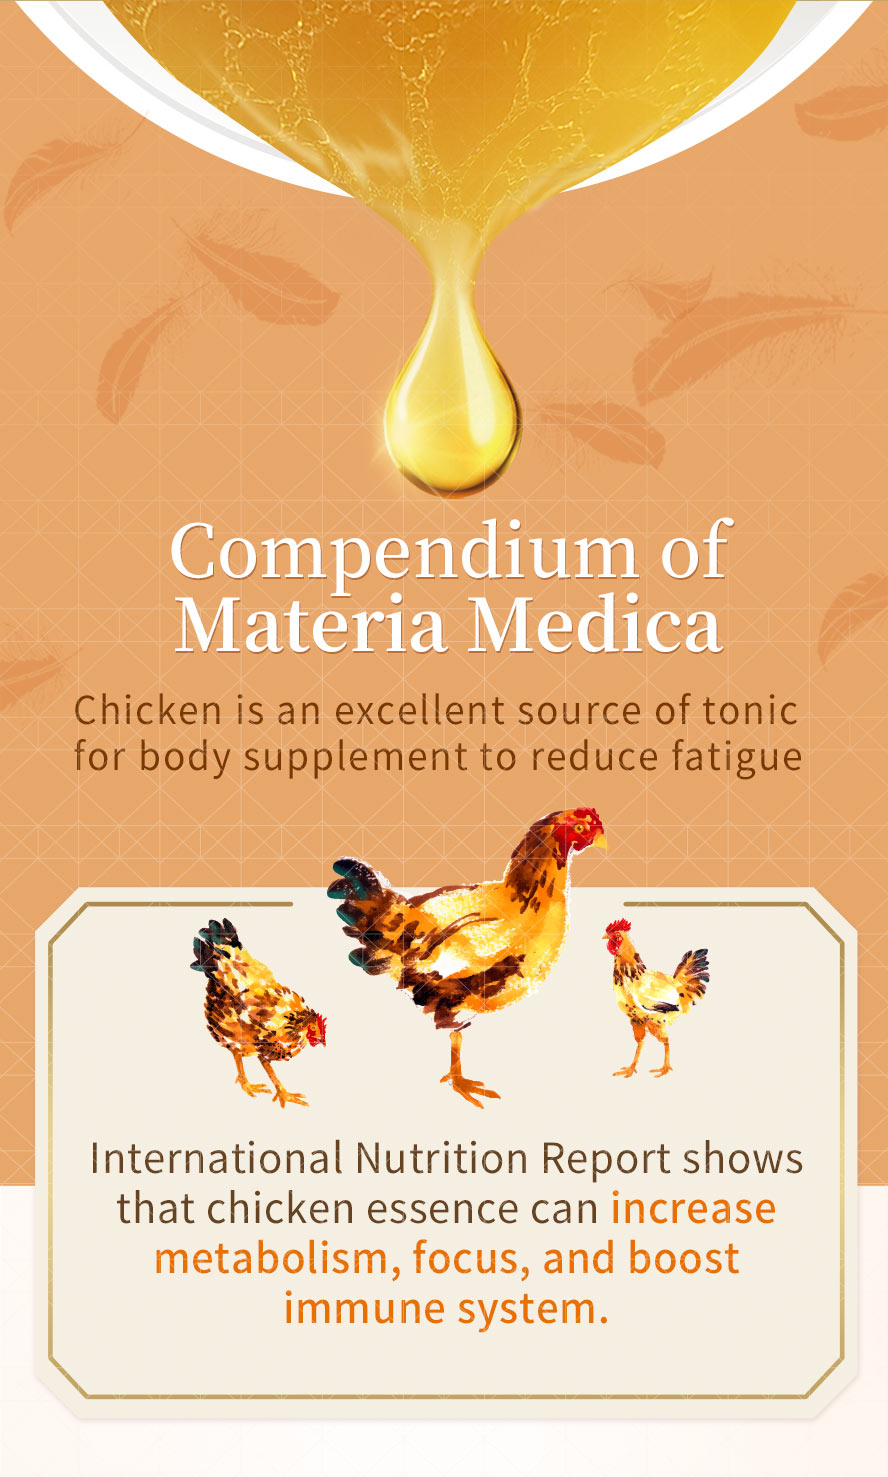 A study has shown that taking chicken essence daily can help combat mental fatigue and improve concentration.